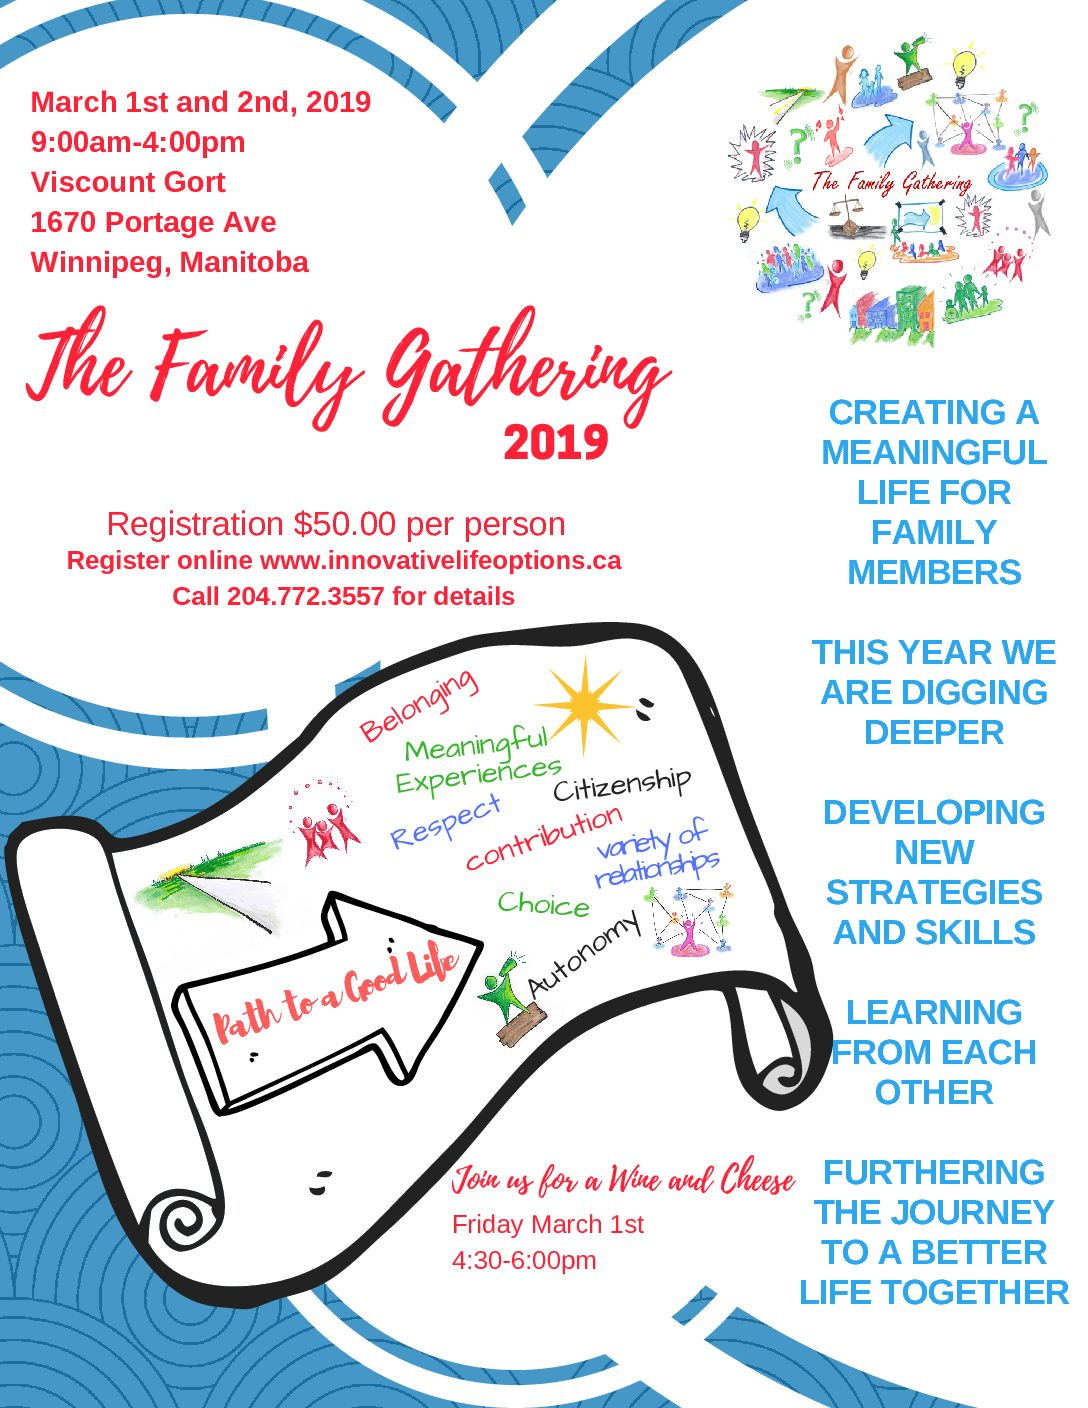 The Family Gathering 2019 Continuity Care